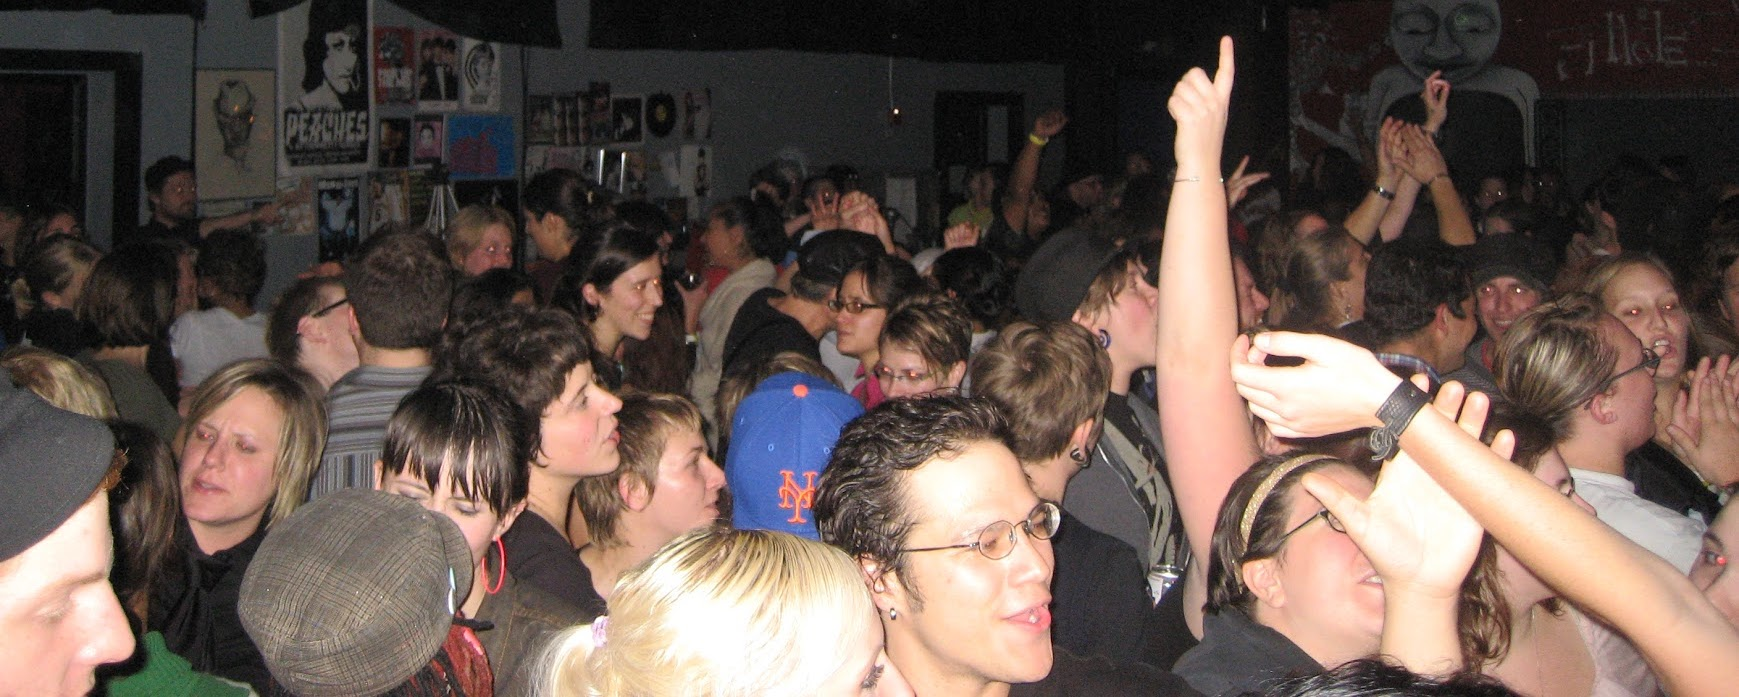 Patrons of Pi Bar fill the crowded dance floor